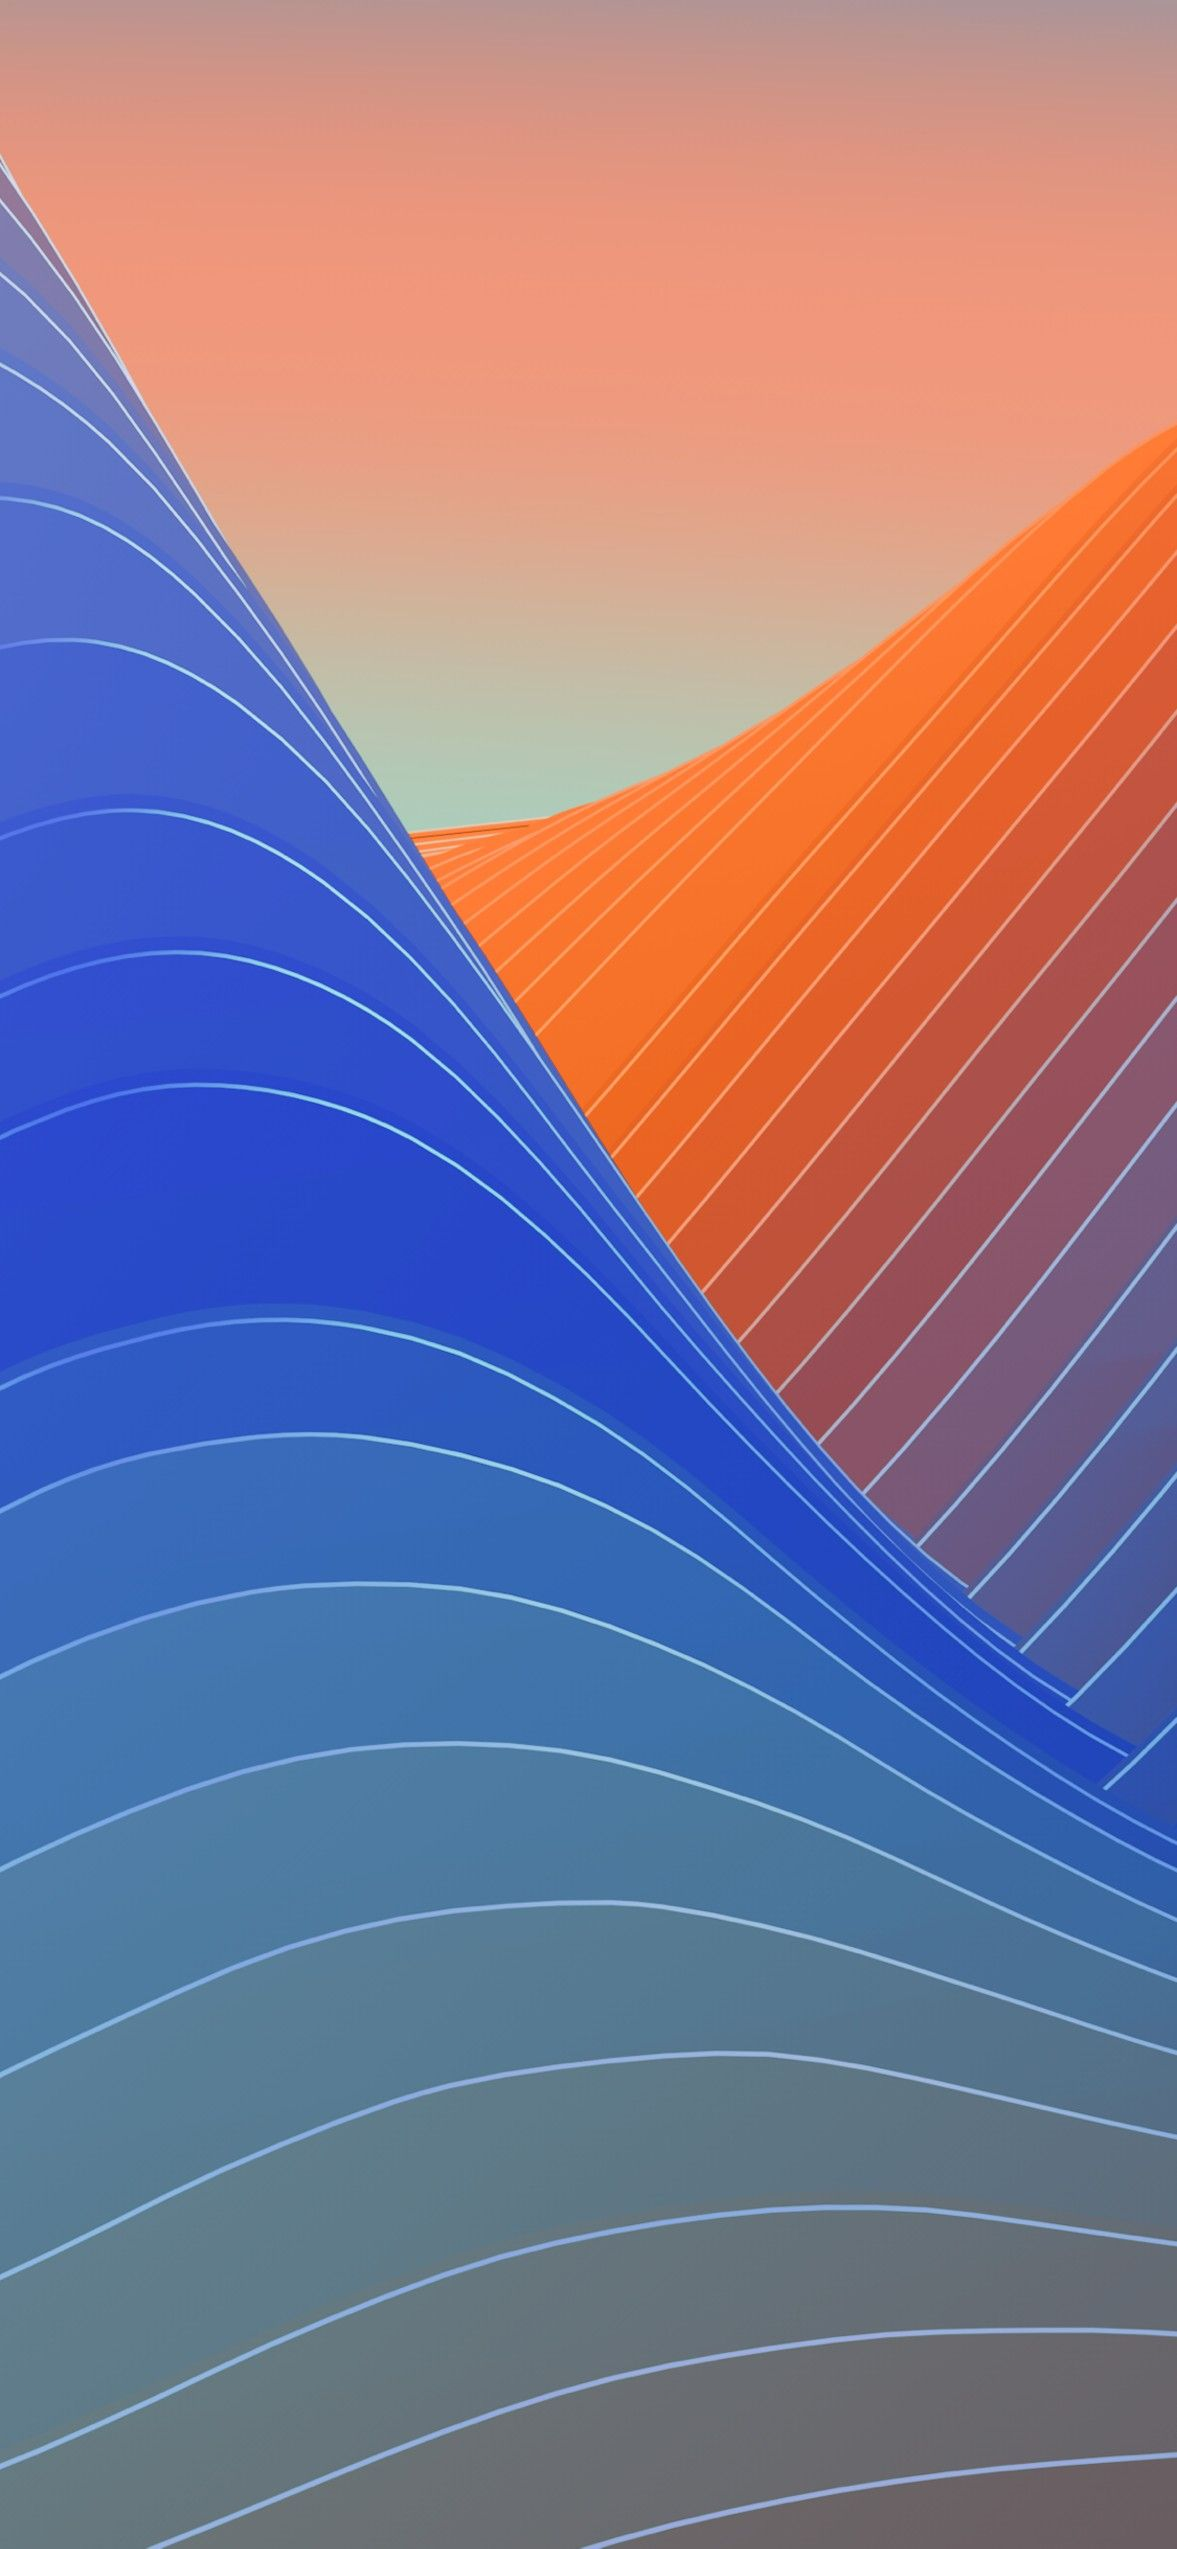 Pin by Parmar Darshil on dynamic wallpaper in 2020 (With